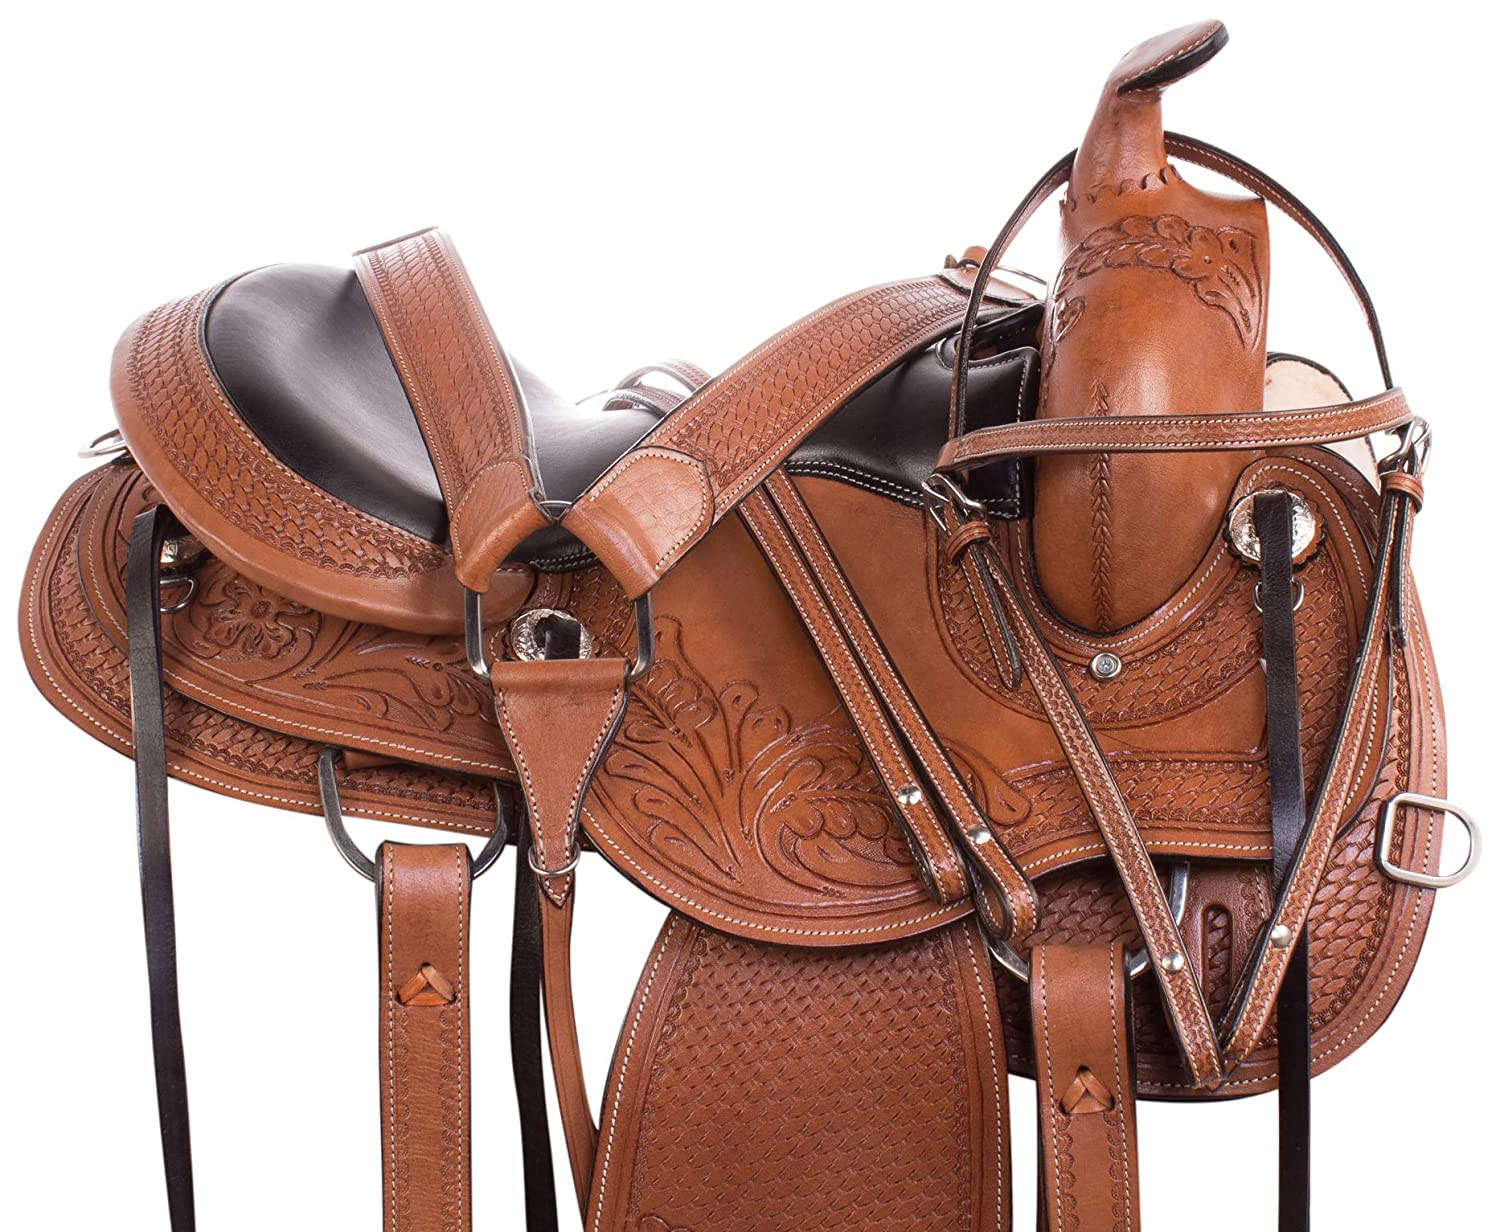 Tough 1 Rancher Leather Double Stitched Breastcollar Heavy Duty Work